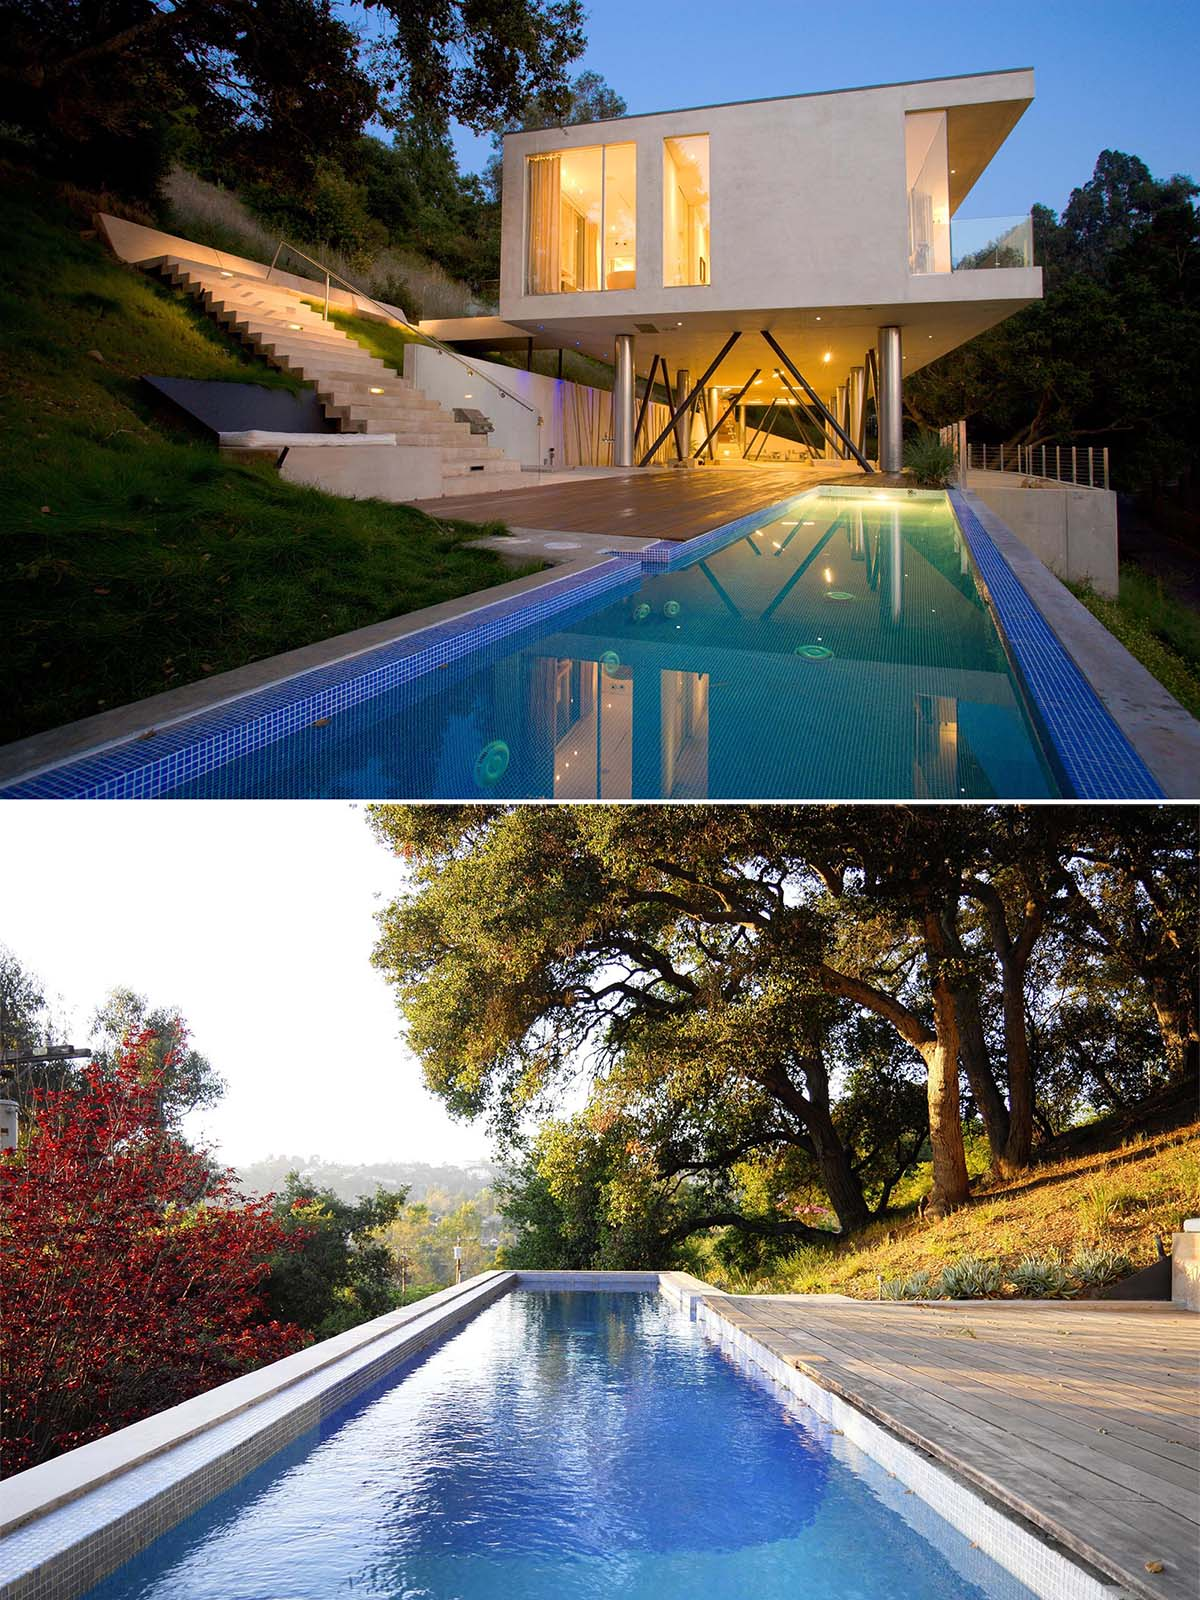 A modern home with a long swimming pool and exterior stairs.